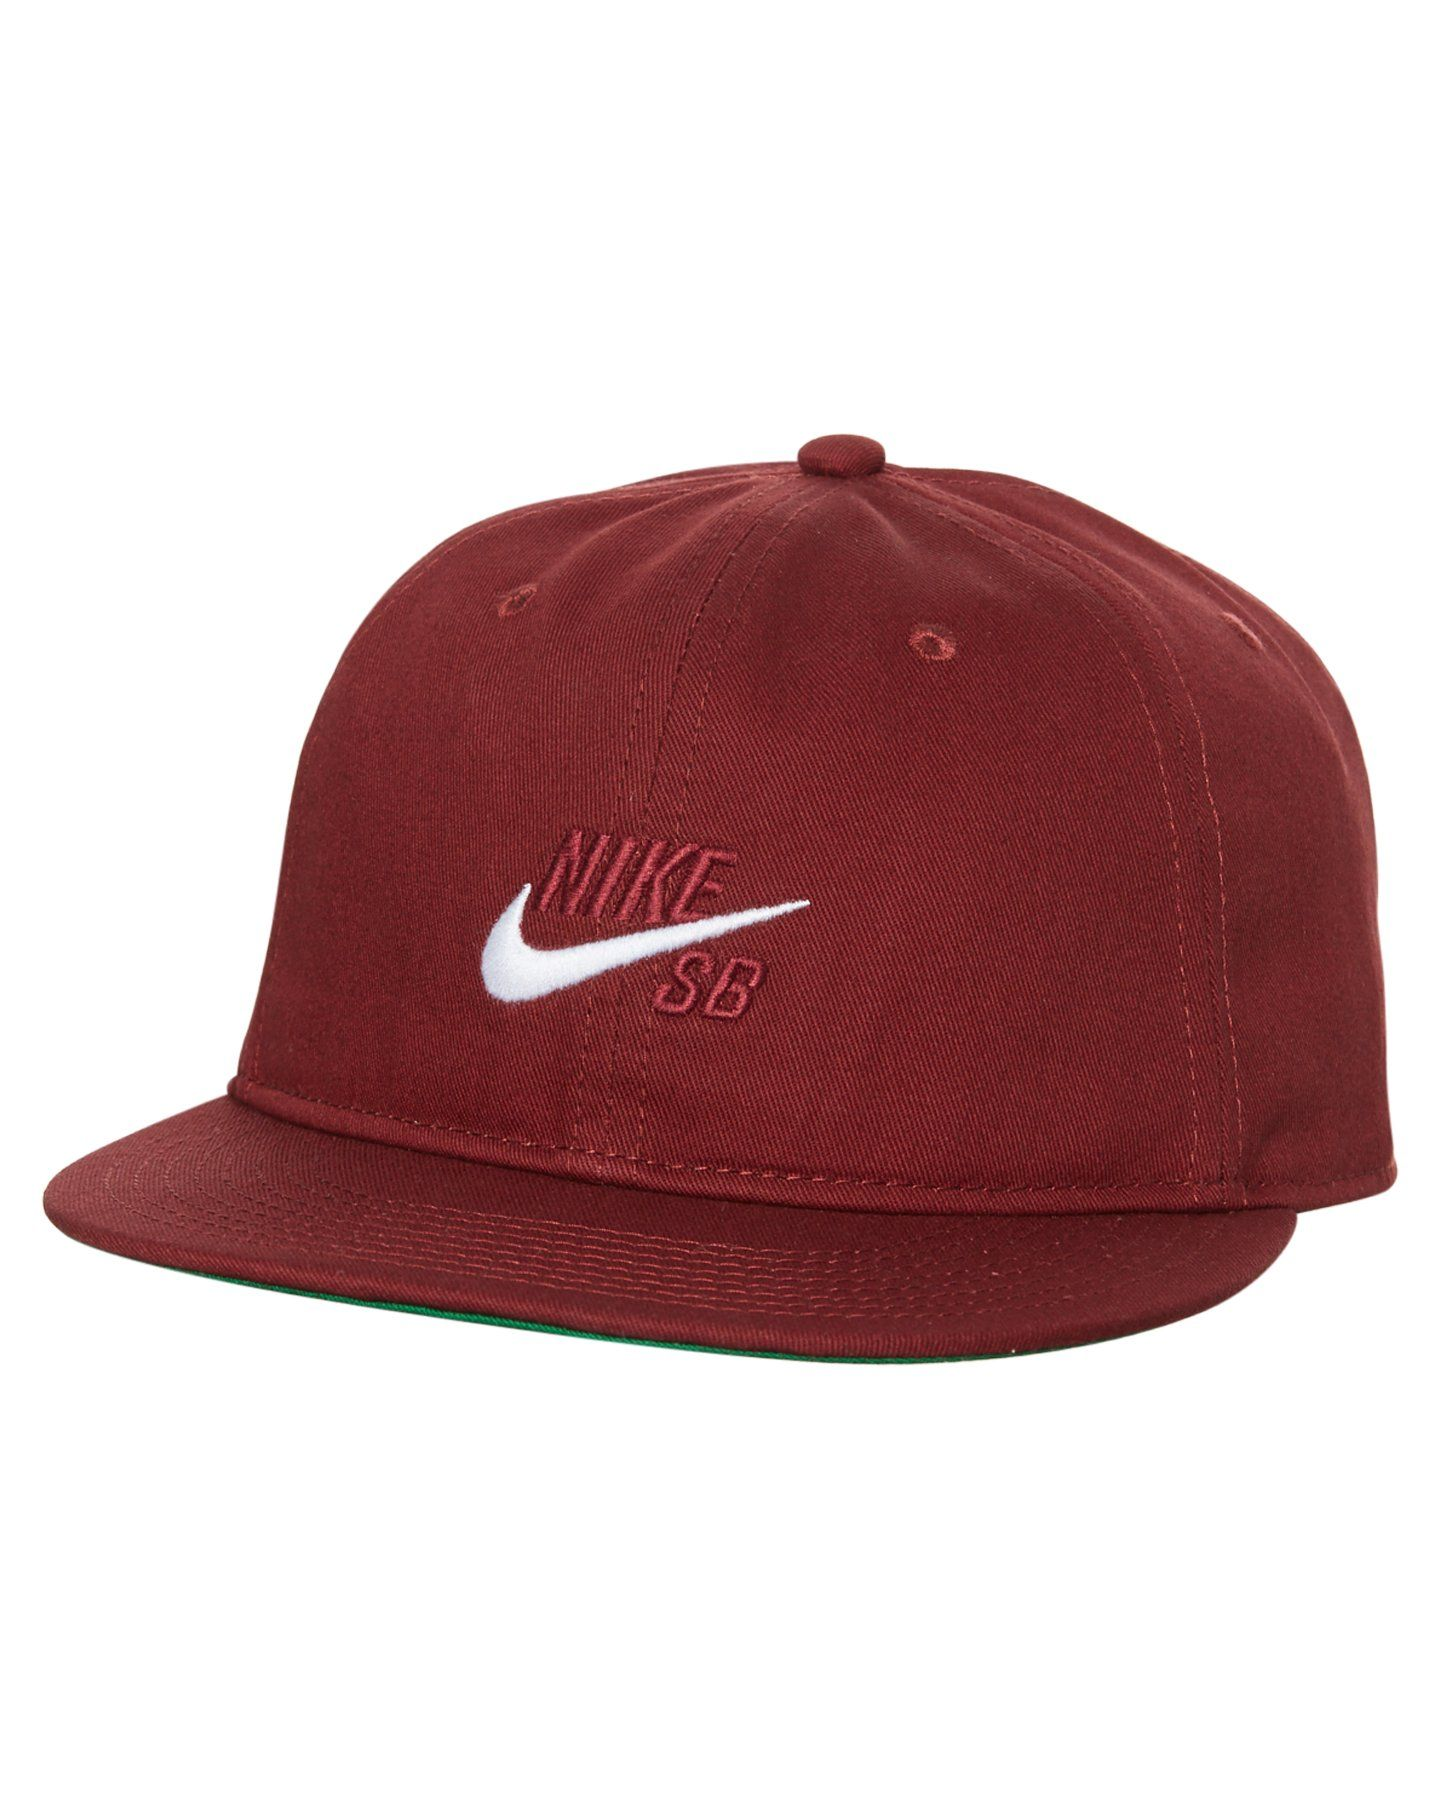 Time to look great with this Nike Sb Vintage Snapback Cap Red - http   7cd7ab2b507c